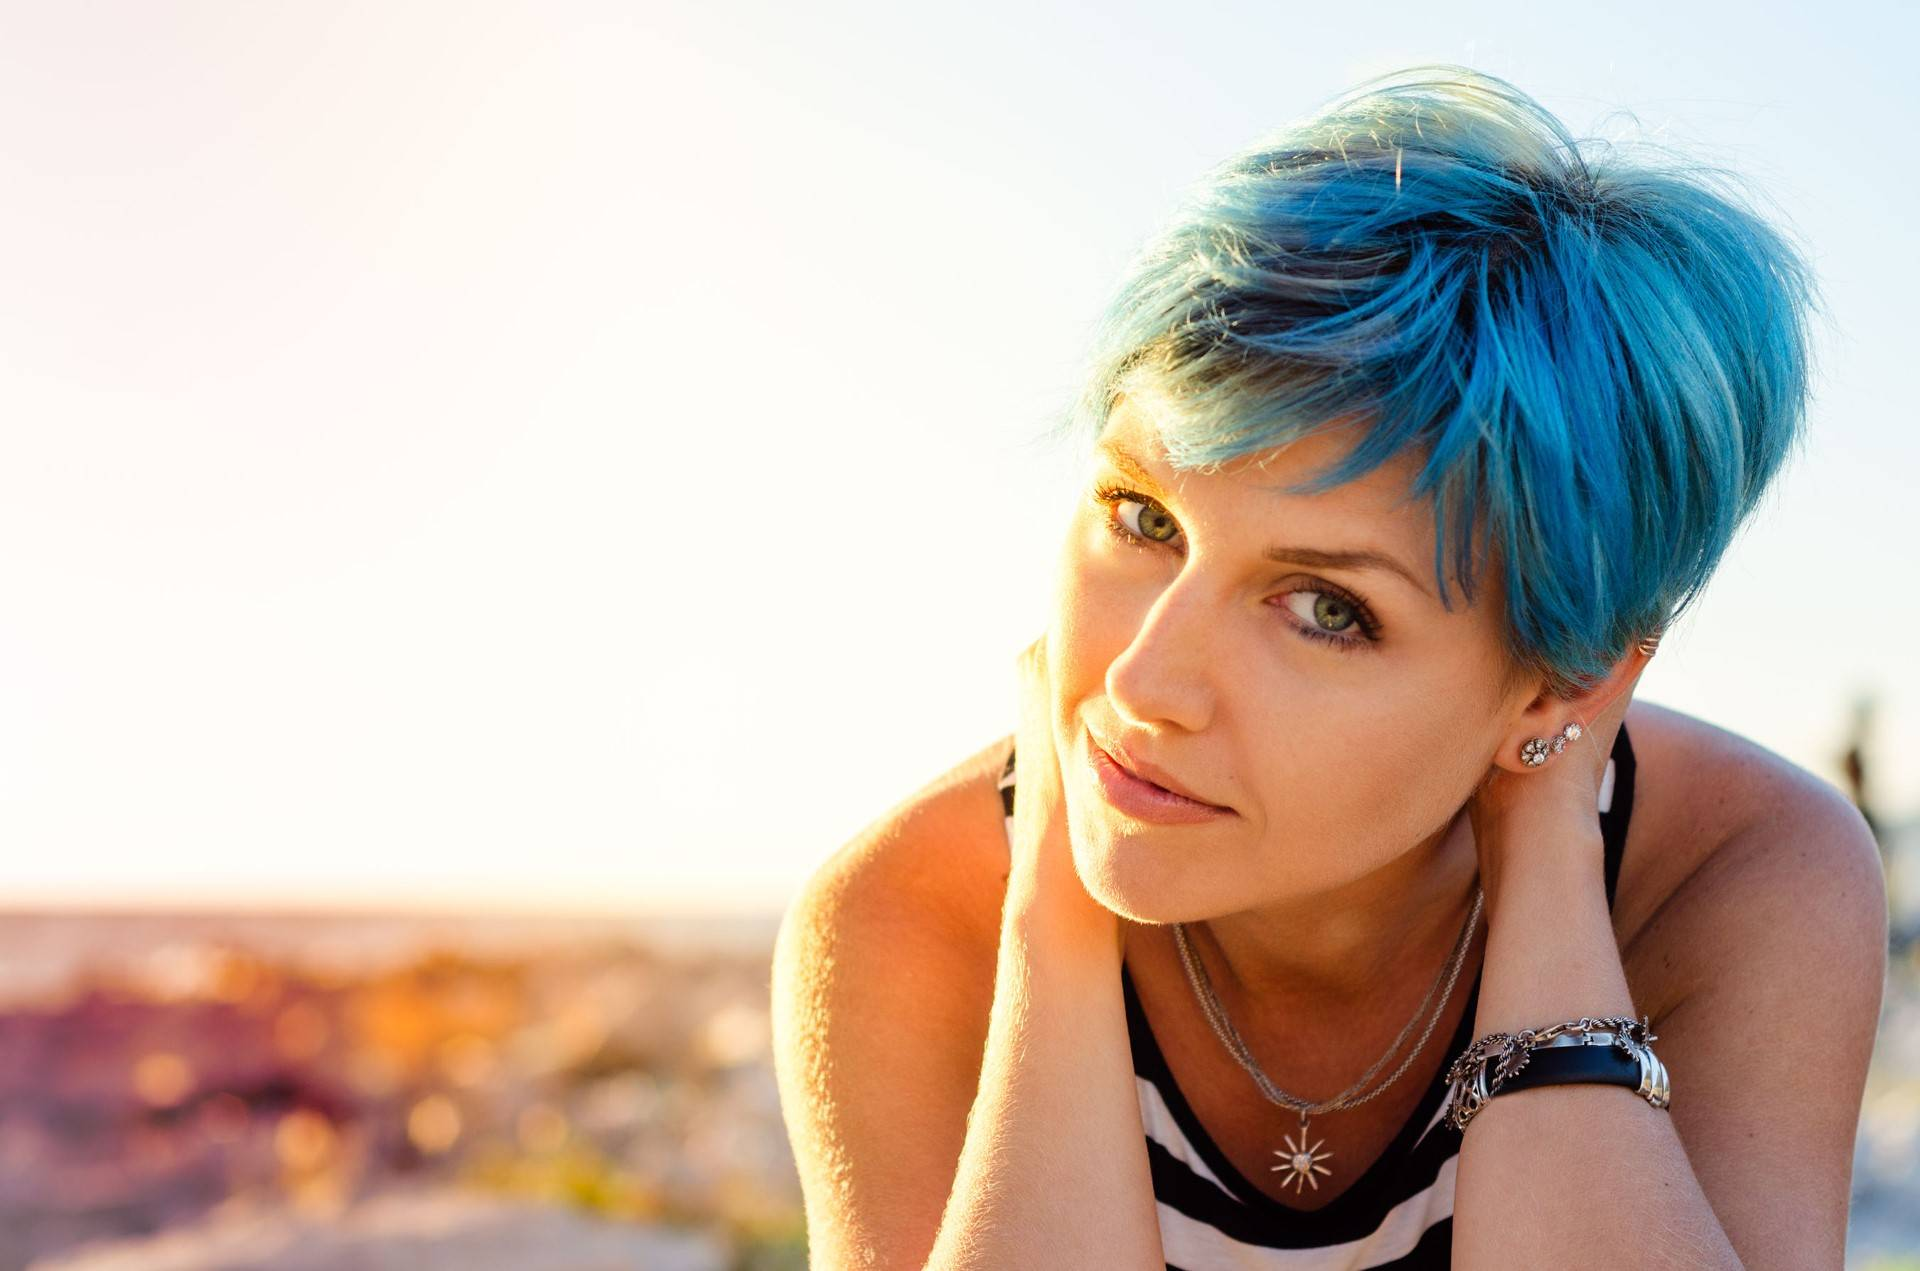 A portrait of beautiful girl with blue hair in sailor's striped top.